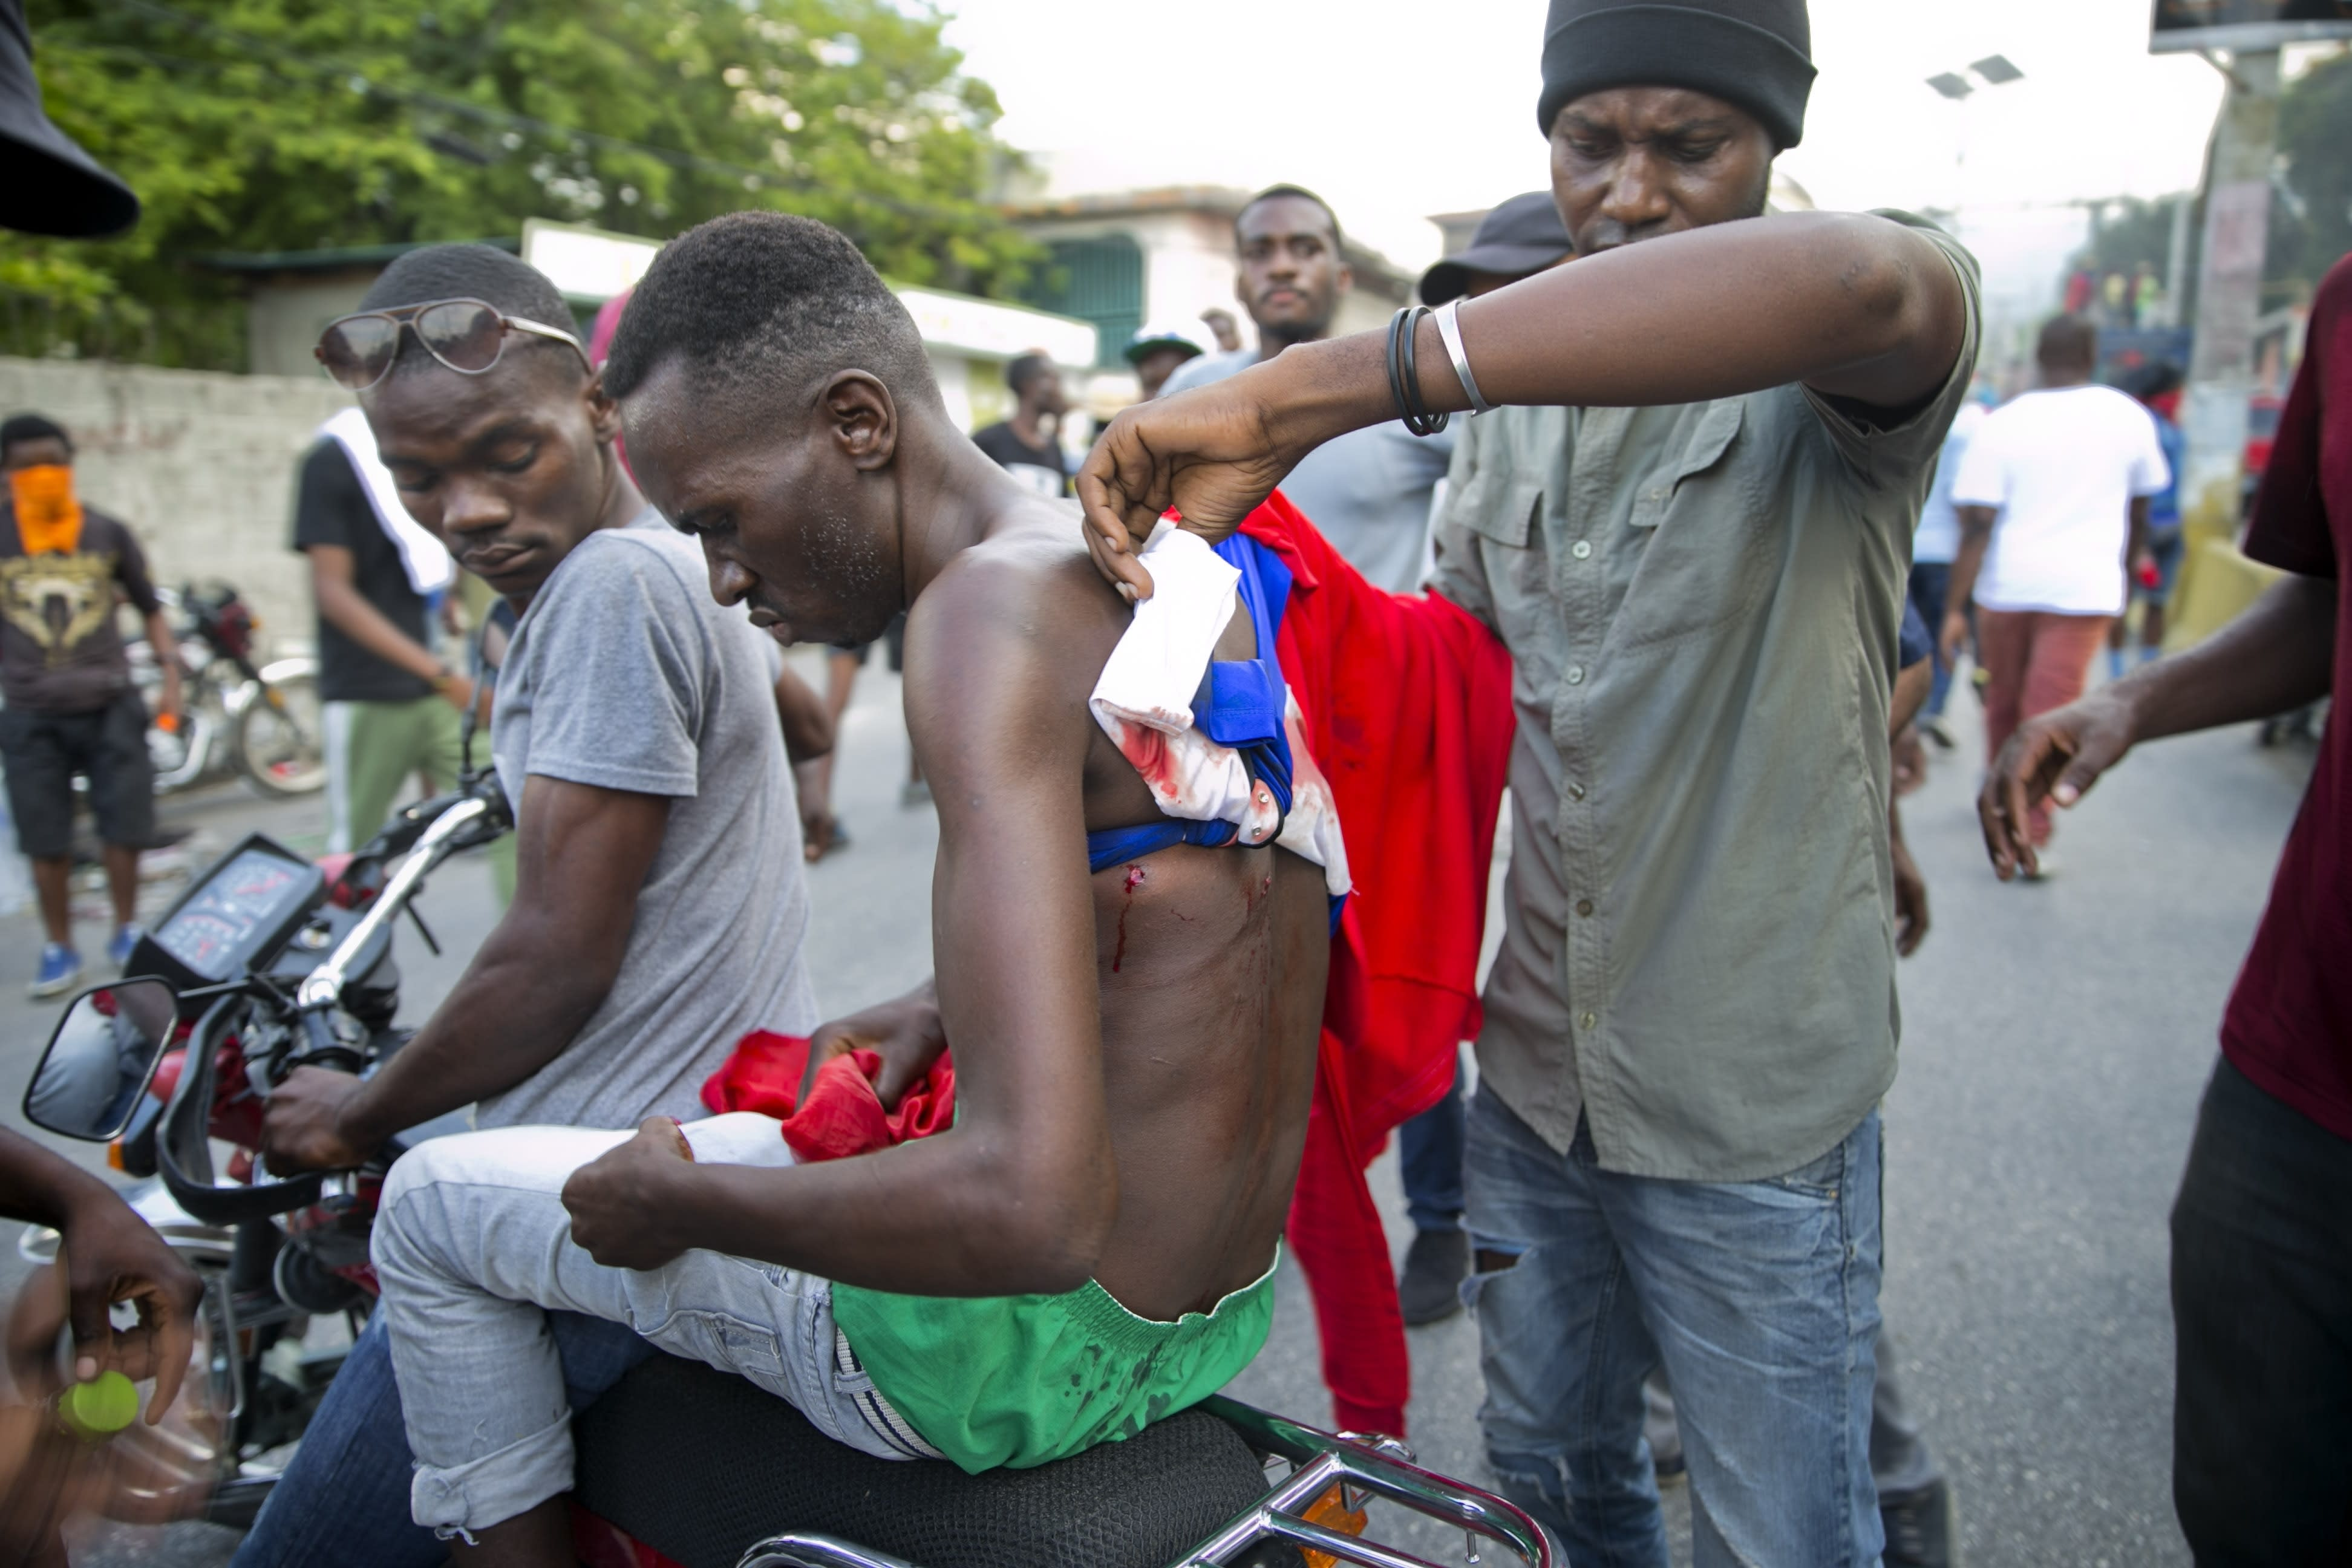 A wounded man is evacuated on a motorcycle during clashes to demand the resignation of Haiti's president Jovenel Moise on the 216th anniversary of Battle of Vertieres in Port-au-Prince, Haiti, Monday, Nov. 18, 2019. At least four people were shot and wounded during a small protest in Haiti's capital after a speech by embattled President Jovenel Moise. A local journalist, a police officer and two protesters were rushed away with apparent bullet wounds. (AP Photo/Dieu Nalio Chery)